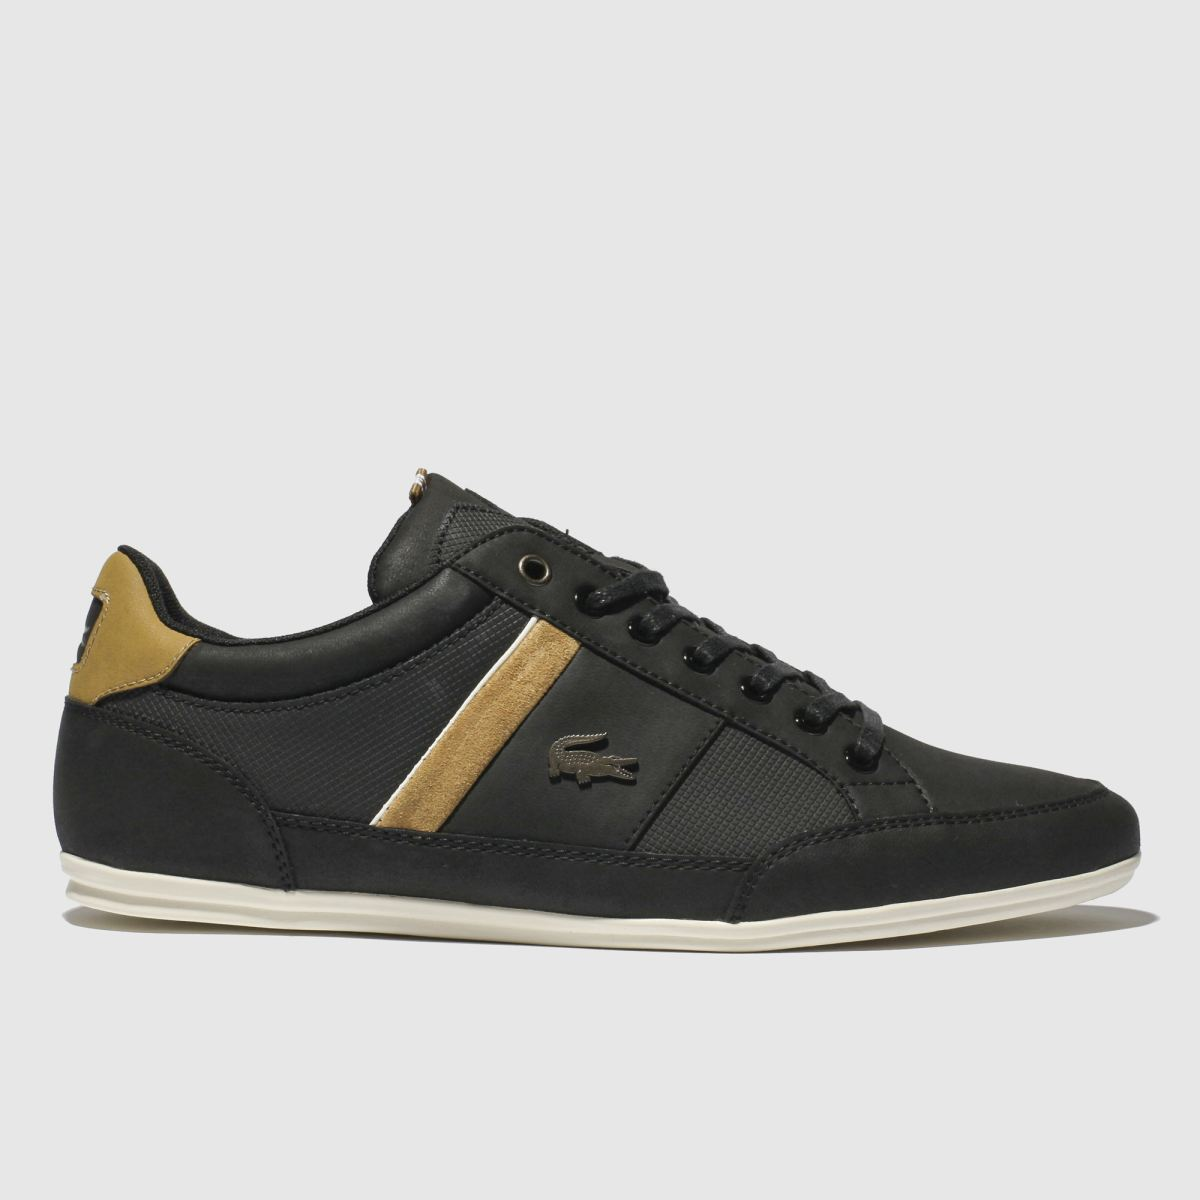 Lacoste Black & Brown Chaymon Trainers